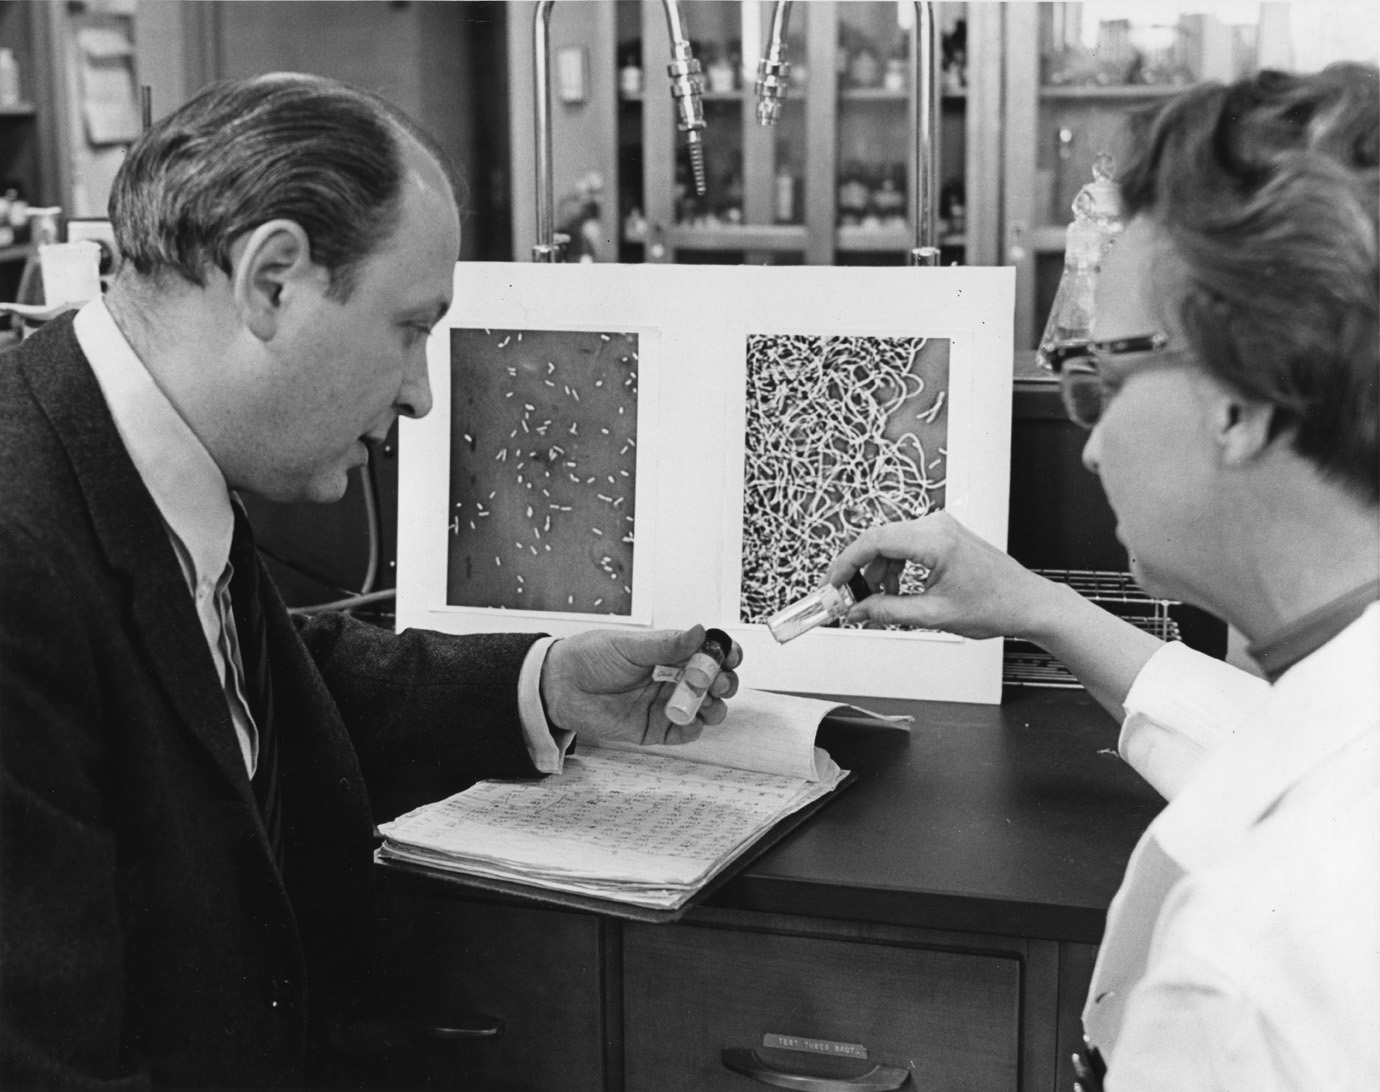 Barnett Rosenberg and Loretta Van Camp with photographs of normal bacteria and bacteria that have been treated with platinum.